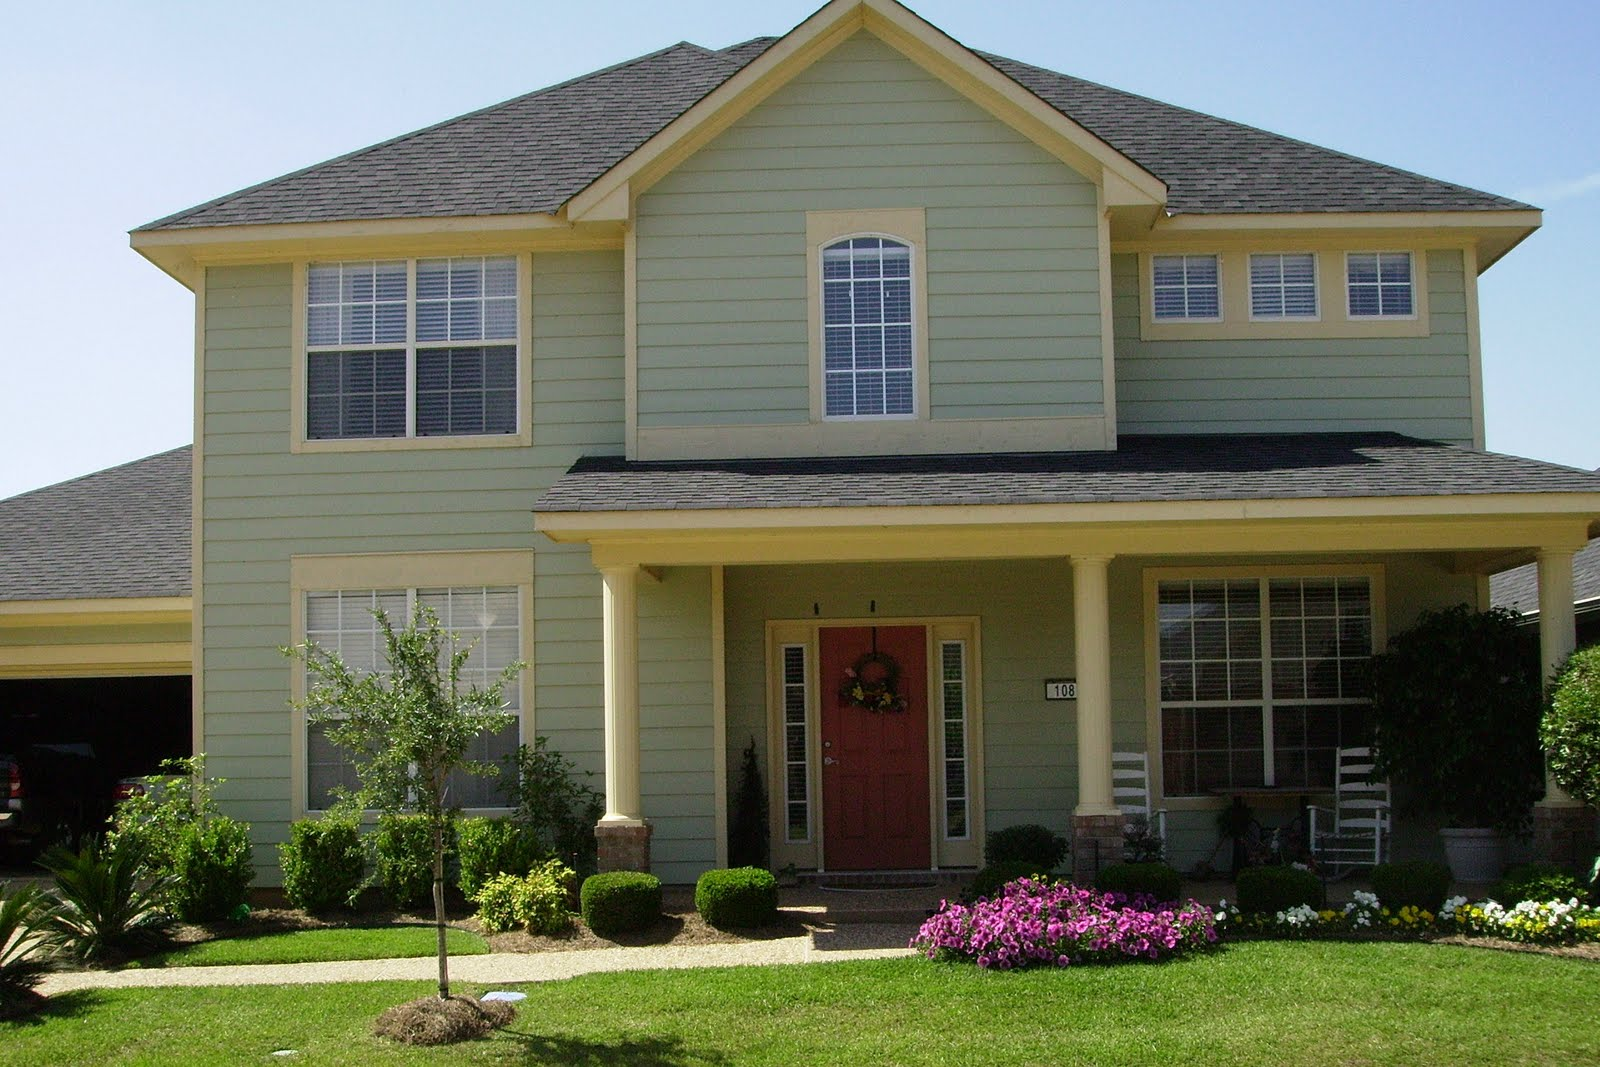 Home depot exterior paint colors home painting ideas - Green exterior paint color schemes ...